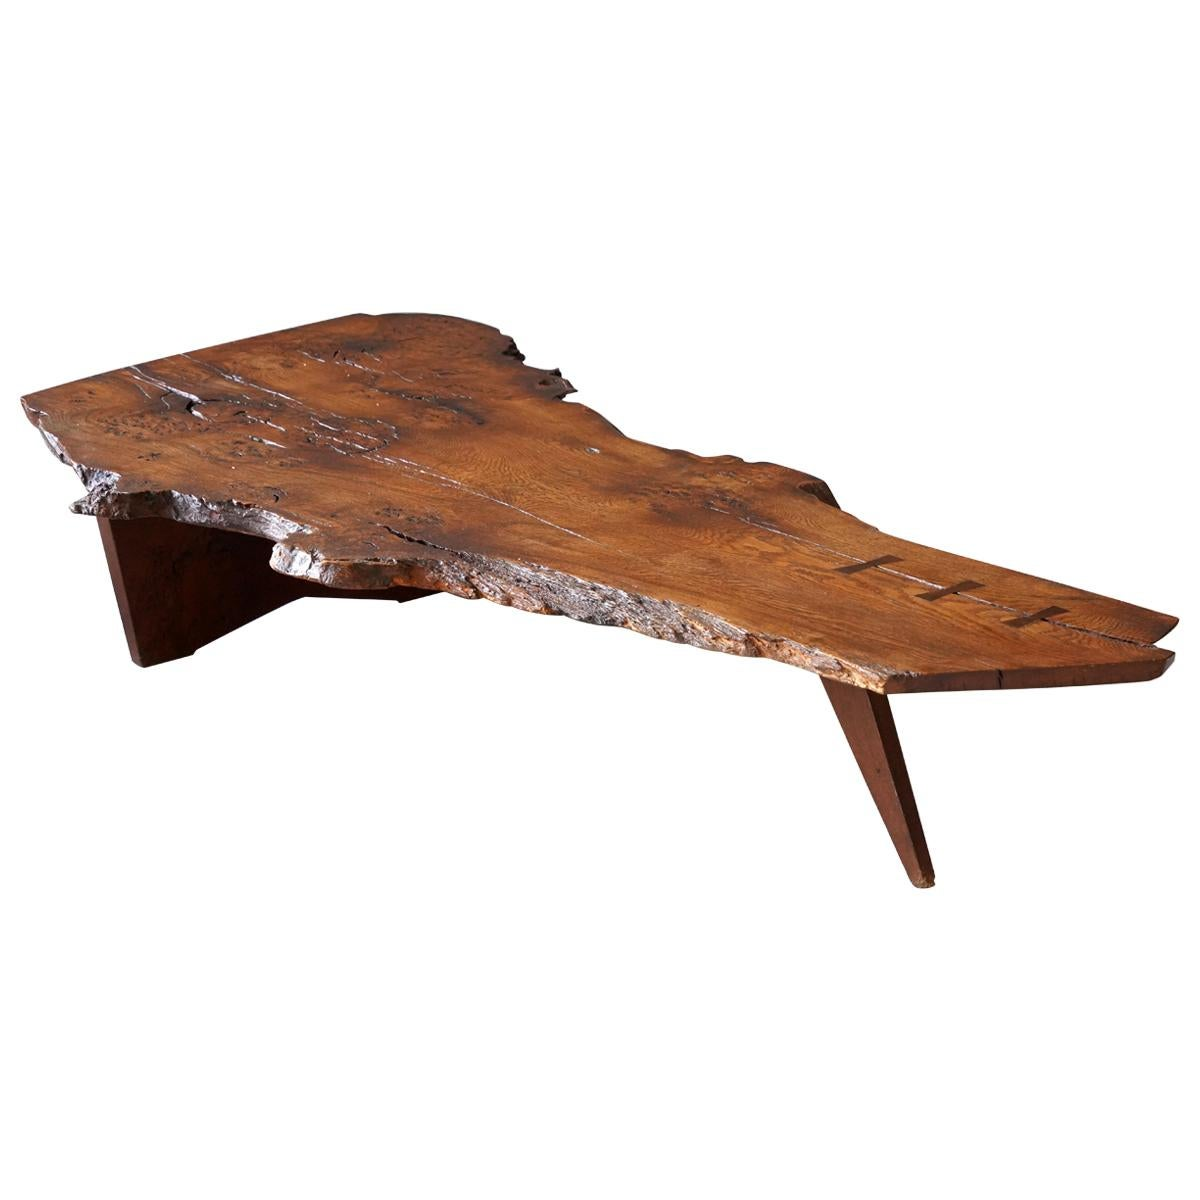 "George Nakashima, Exceptional and Large ""Slab"" Coffee Table, Burl, Studio, 1961"